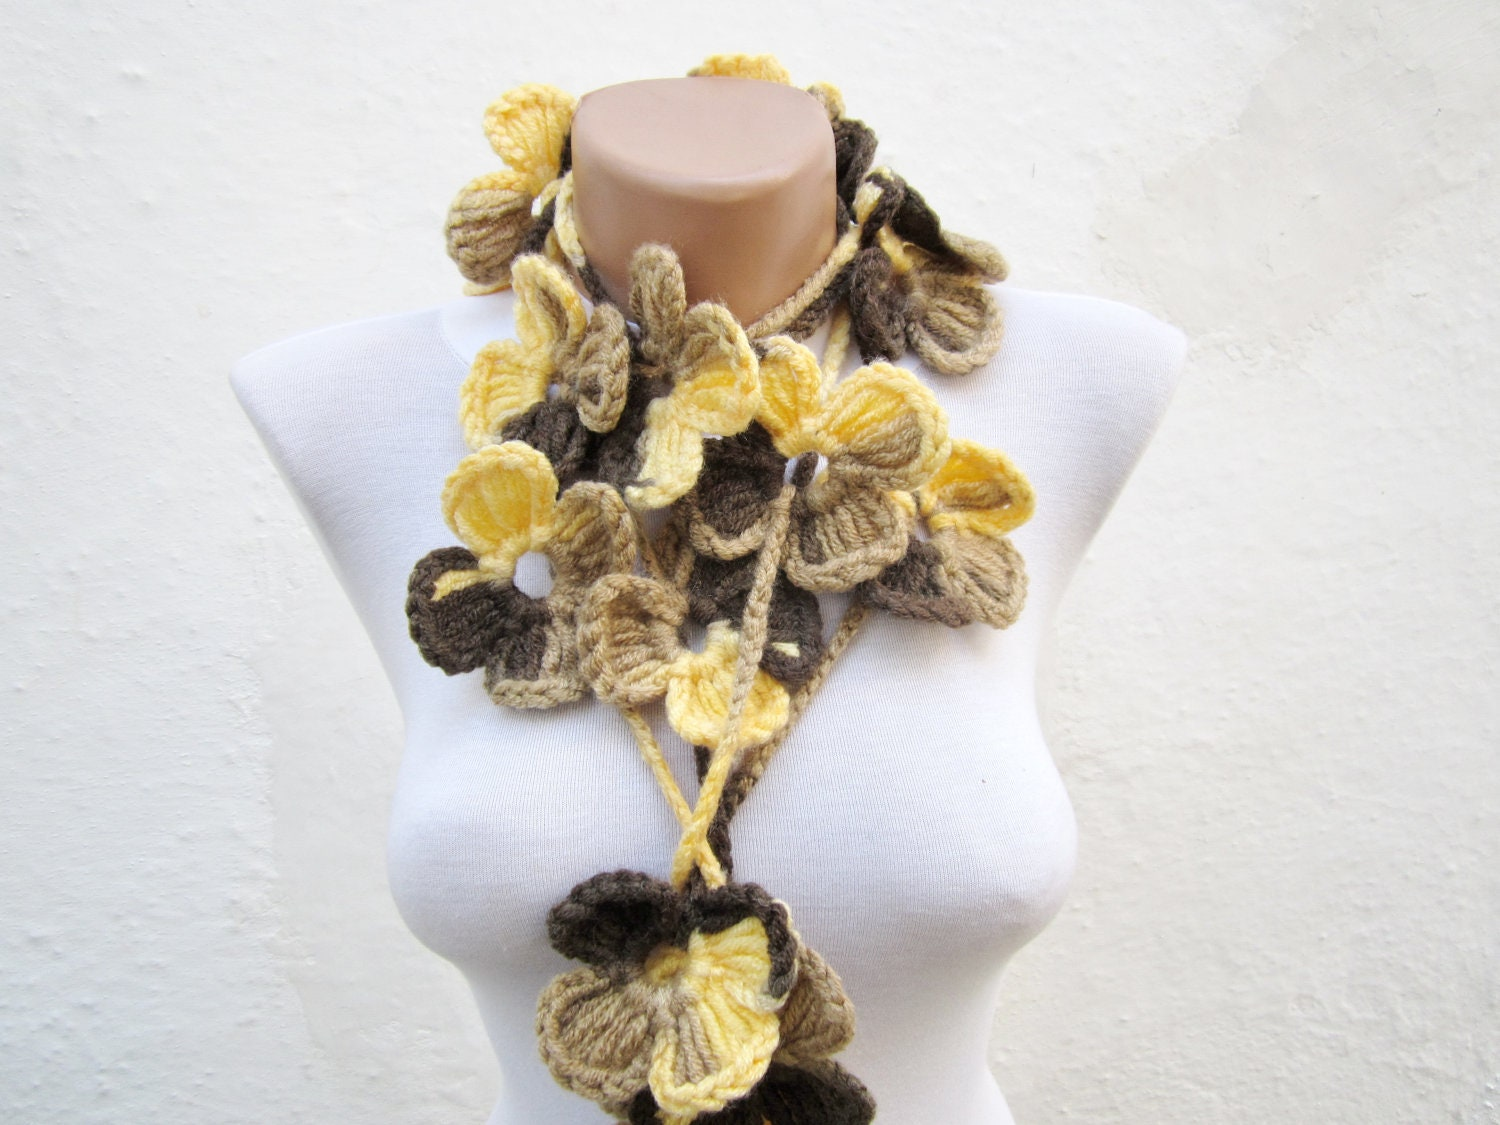 SALE % 20 - Was 25 Now 20- Hand crochet Lariat Scarf Yellow Brown  Flower Lariat Scarf Colorful Variegated Long Necklace Holiday Accessories - nurlu